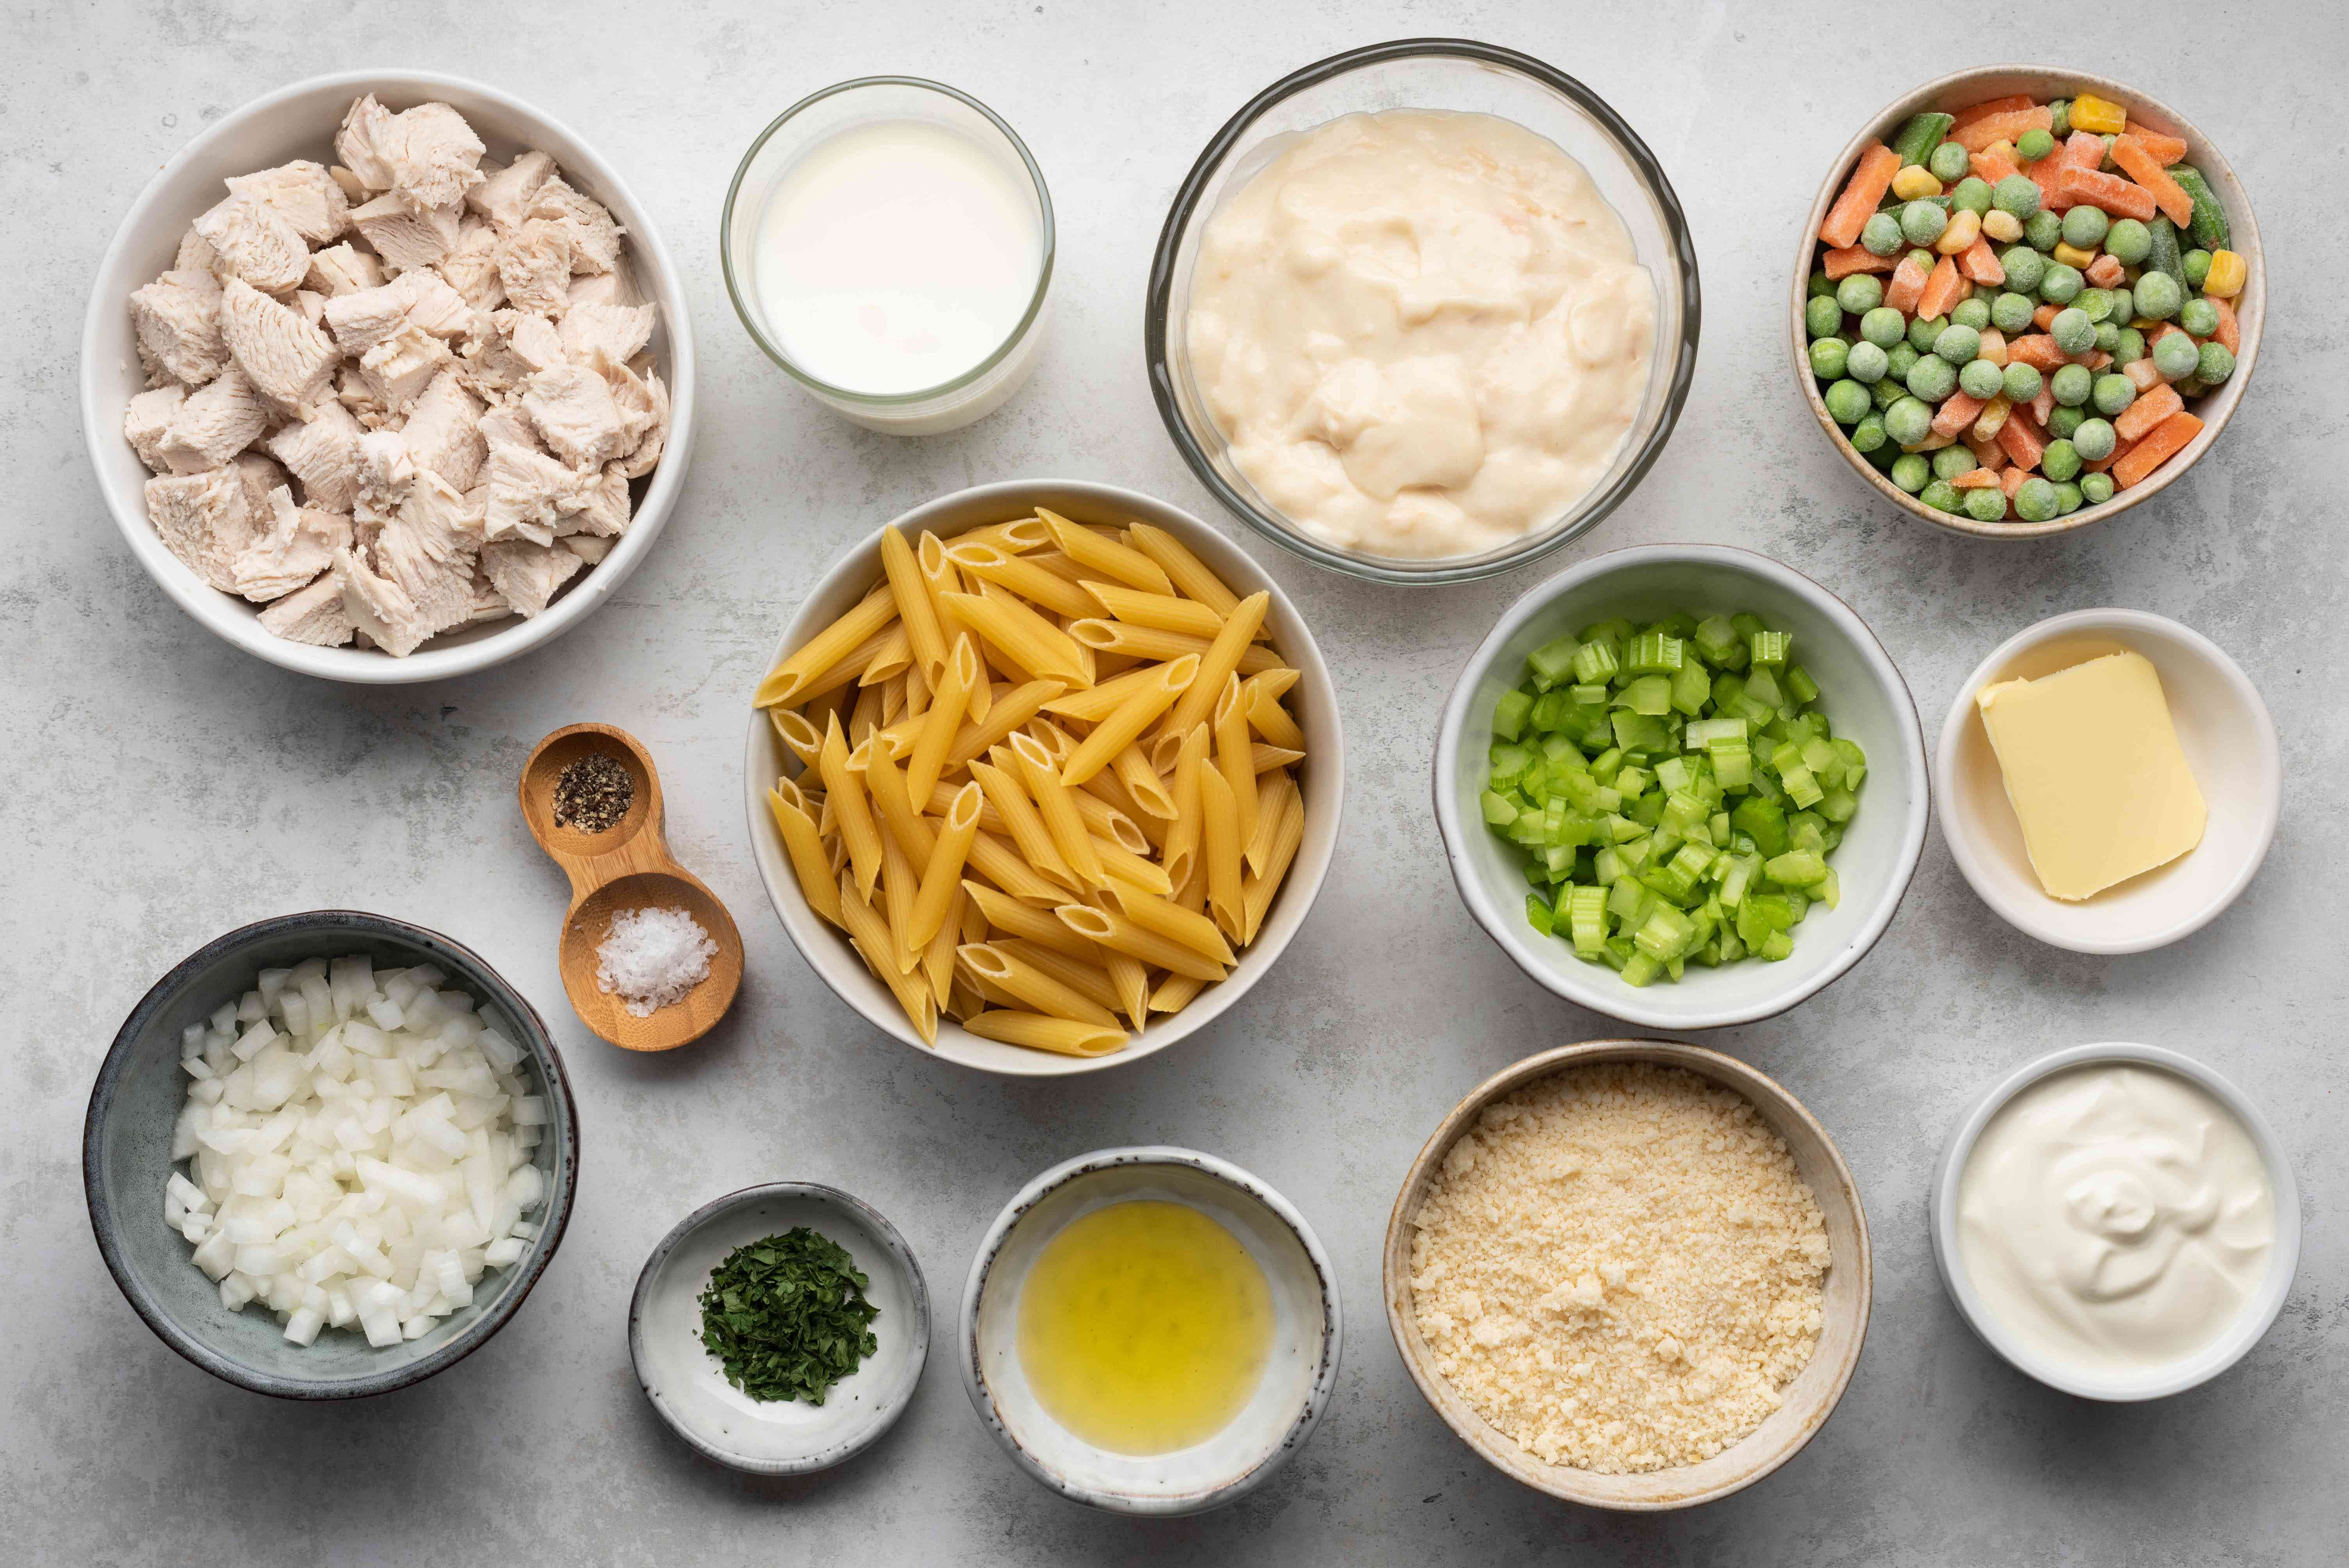 Creamy Chicken and Mini Penne Casserole ingredients